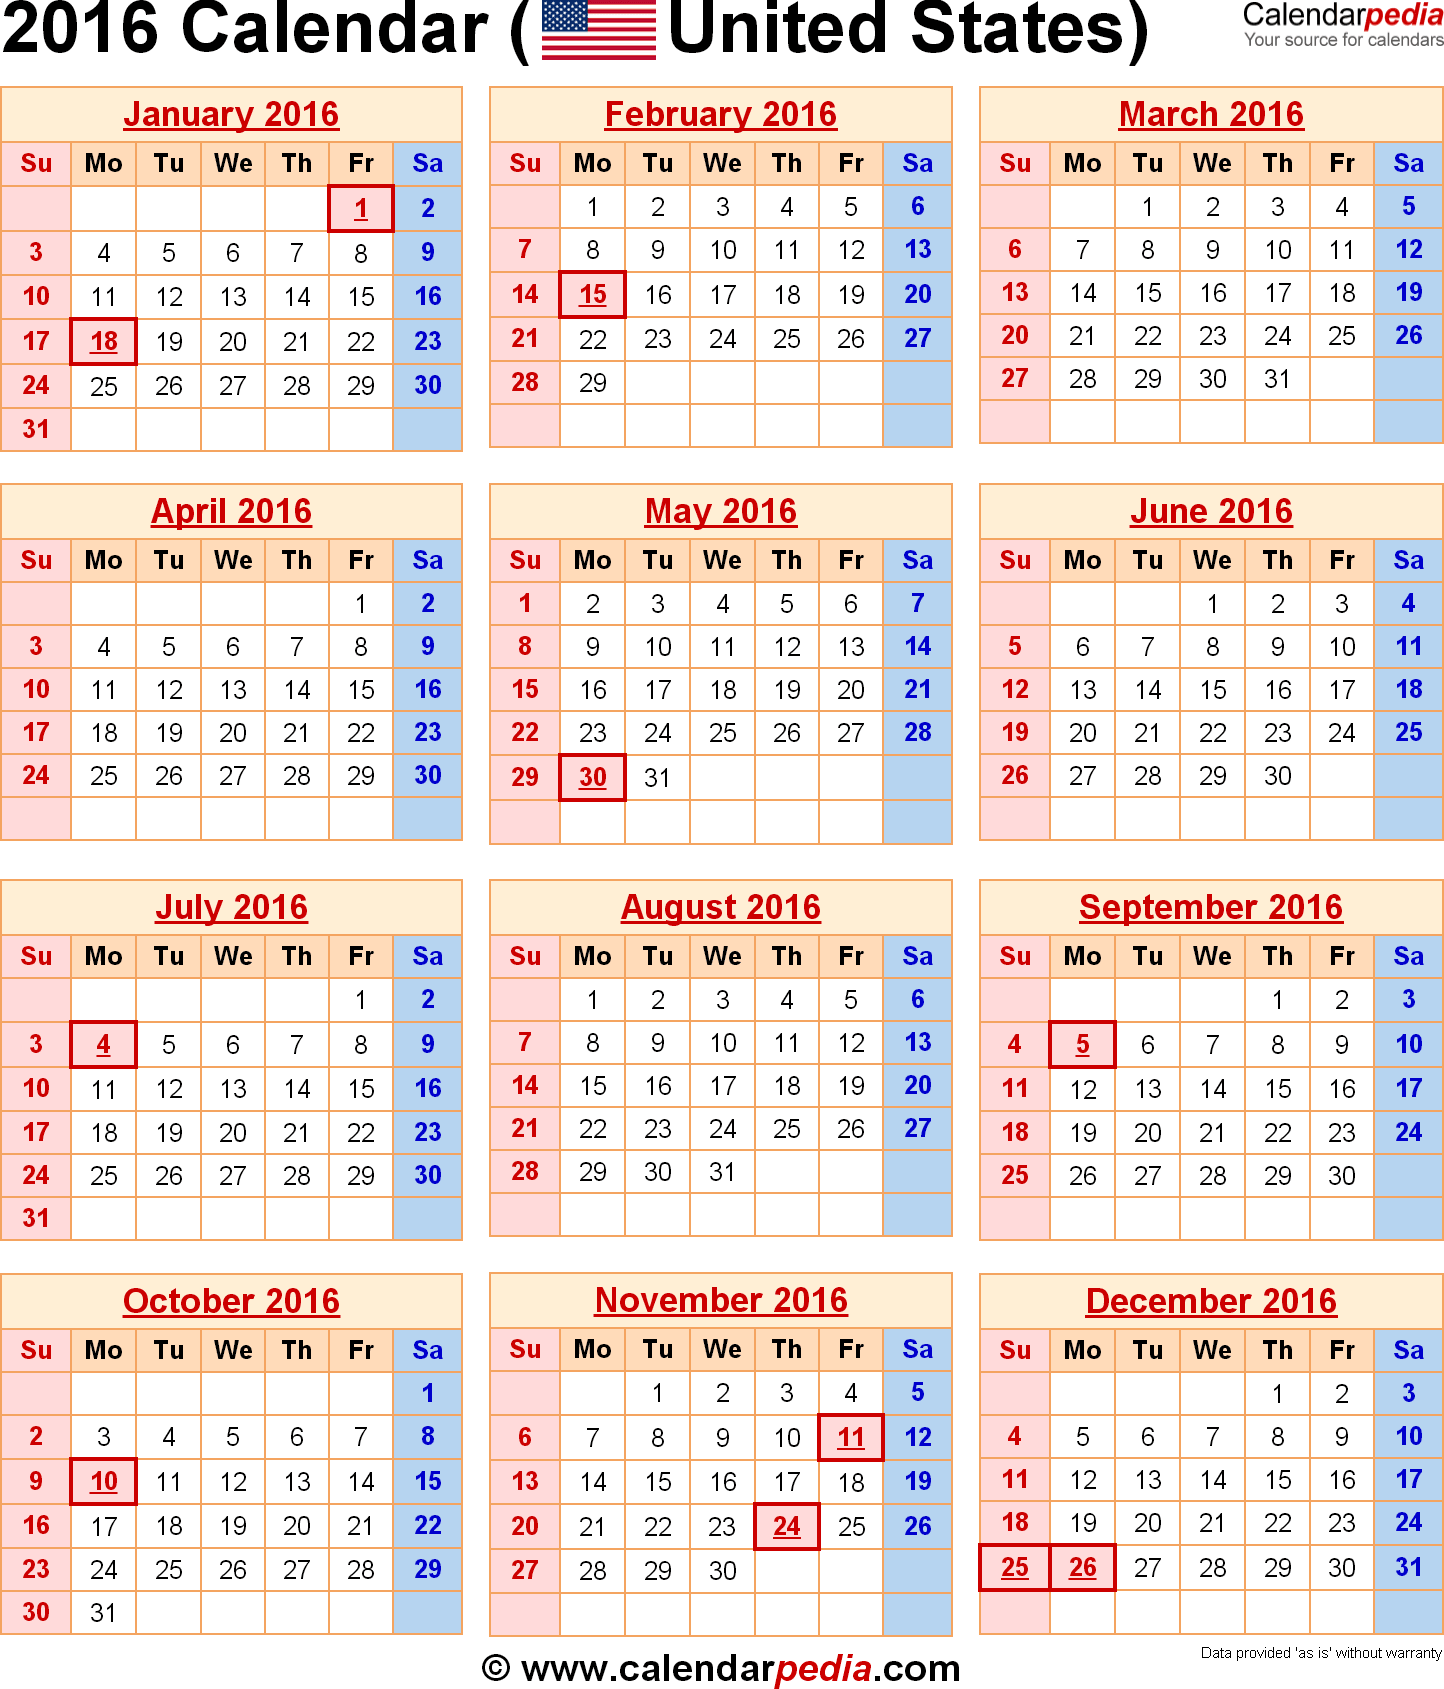 Year 2019 Calendar United States With 2016 Federal Holidays Excel PDF Word Templates